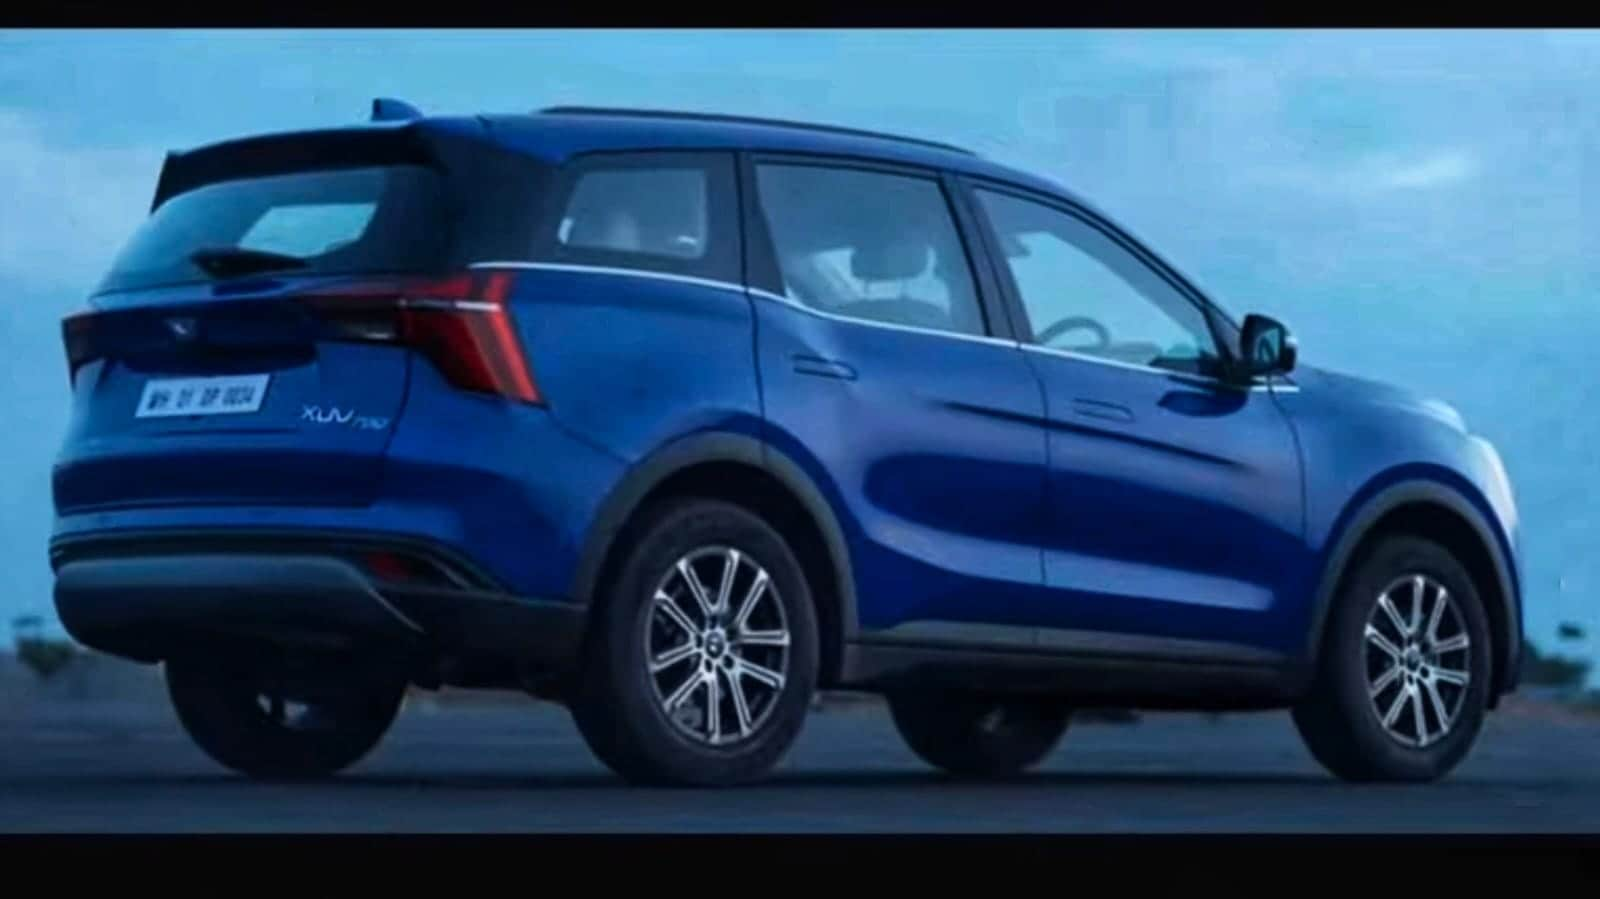 XUV700 from Mahindra will be offered in five as well as seven-seat layout. It will sit on 17-inch steel and 18-inch alloy wheels.